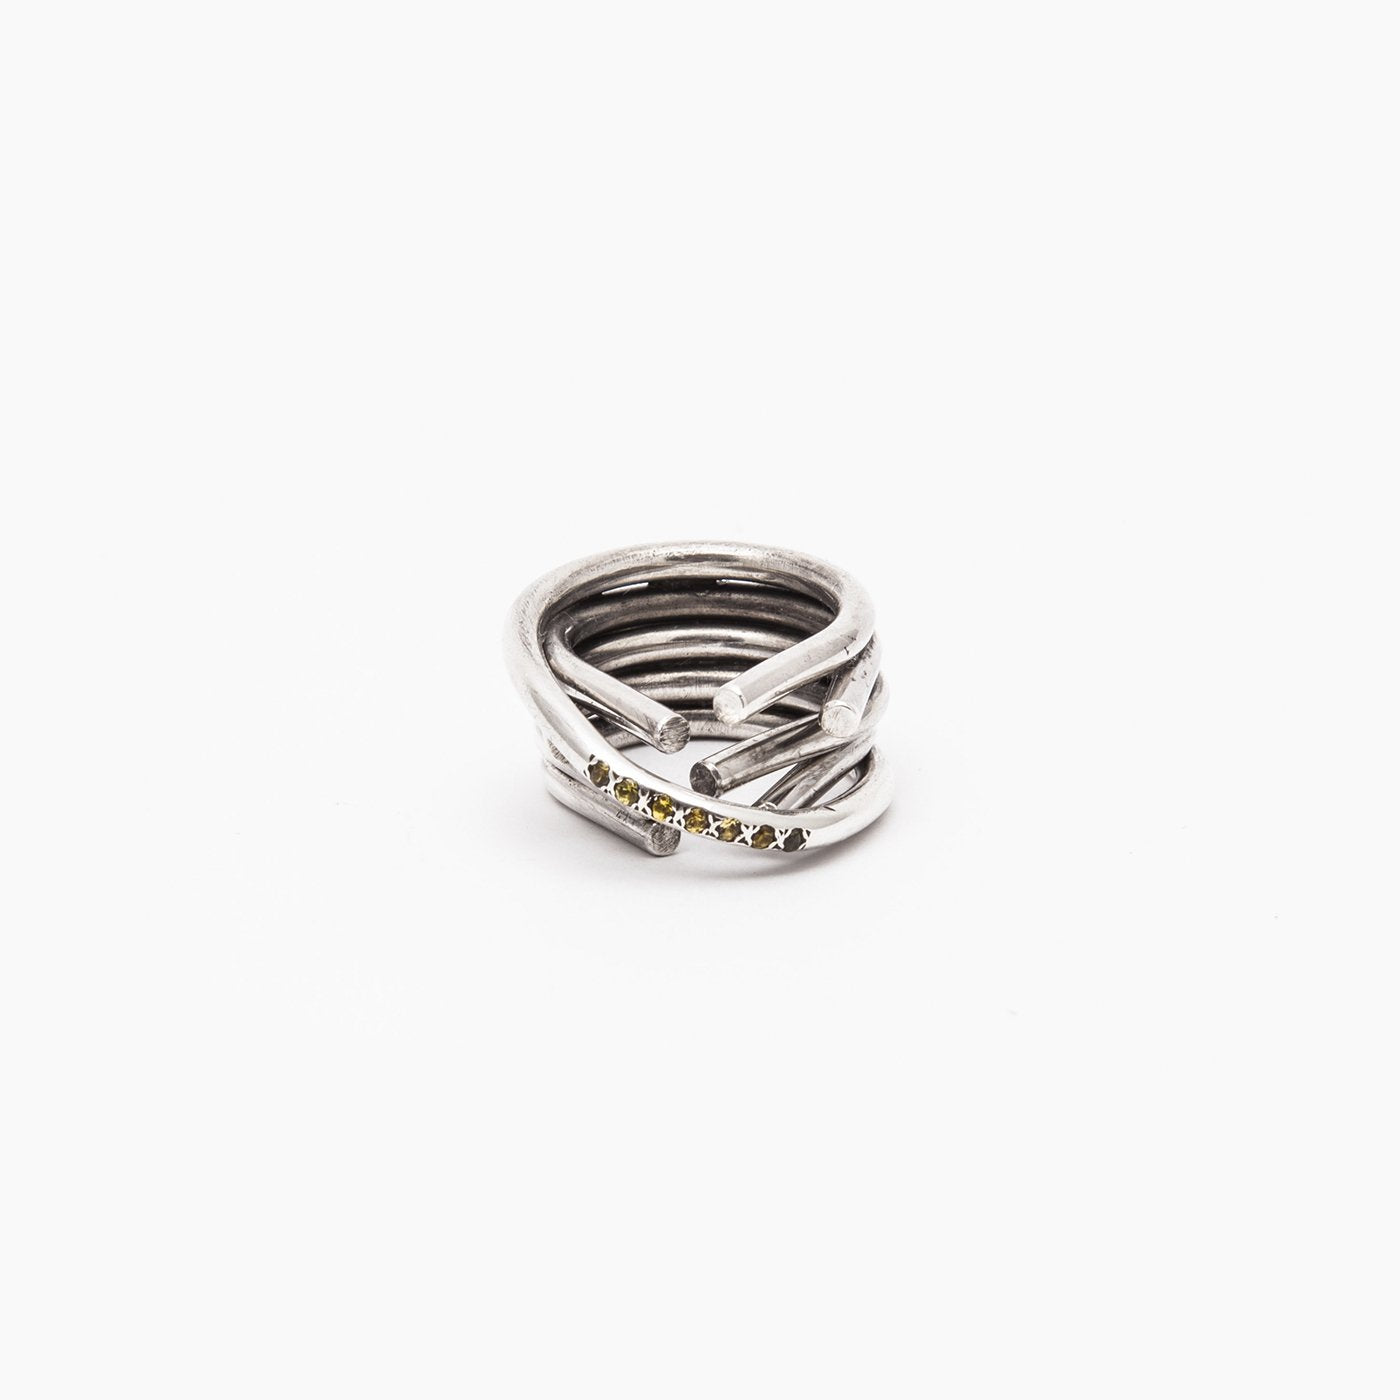 Chaotic Infinity ring YS